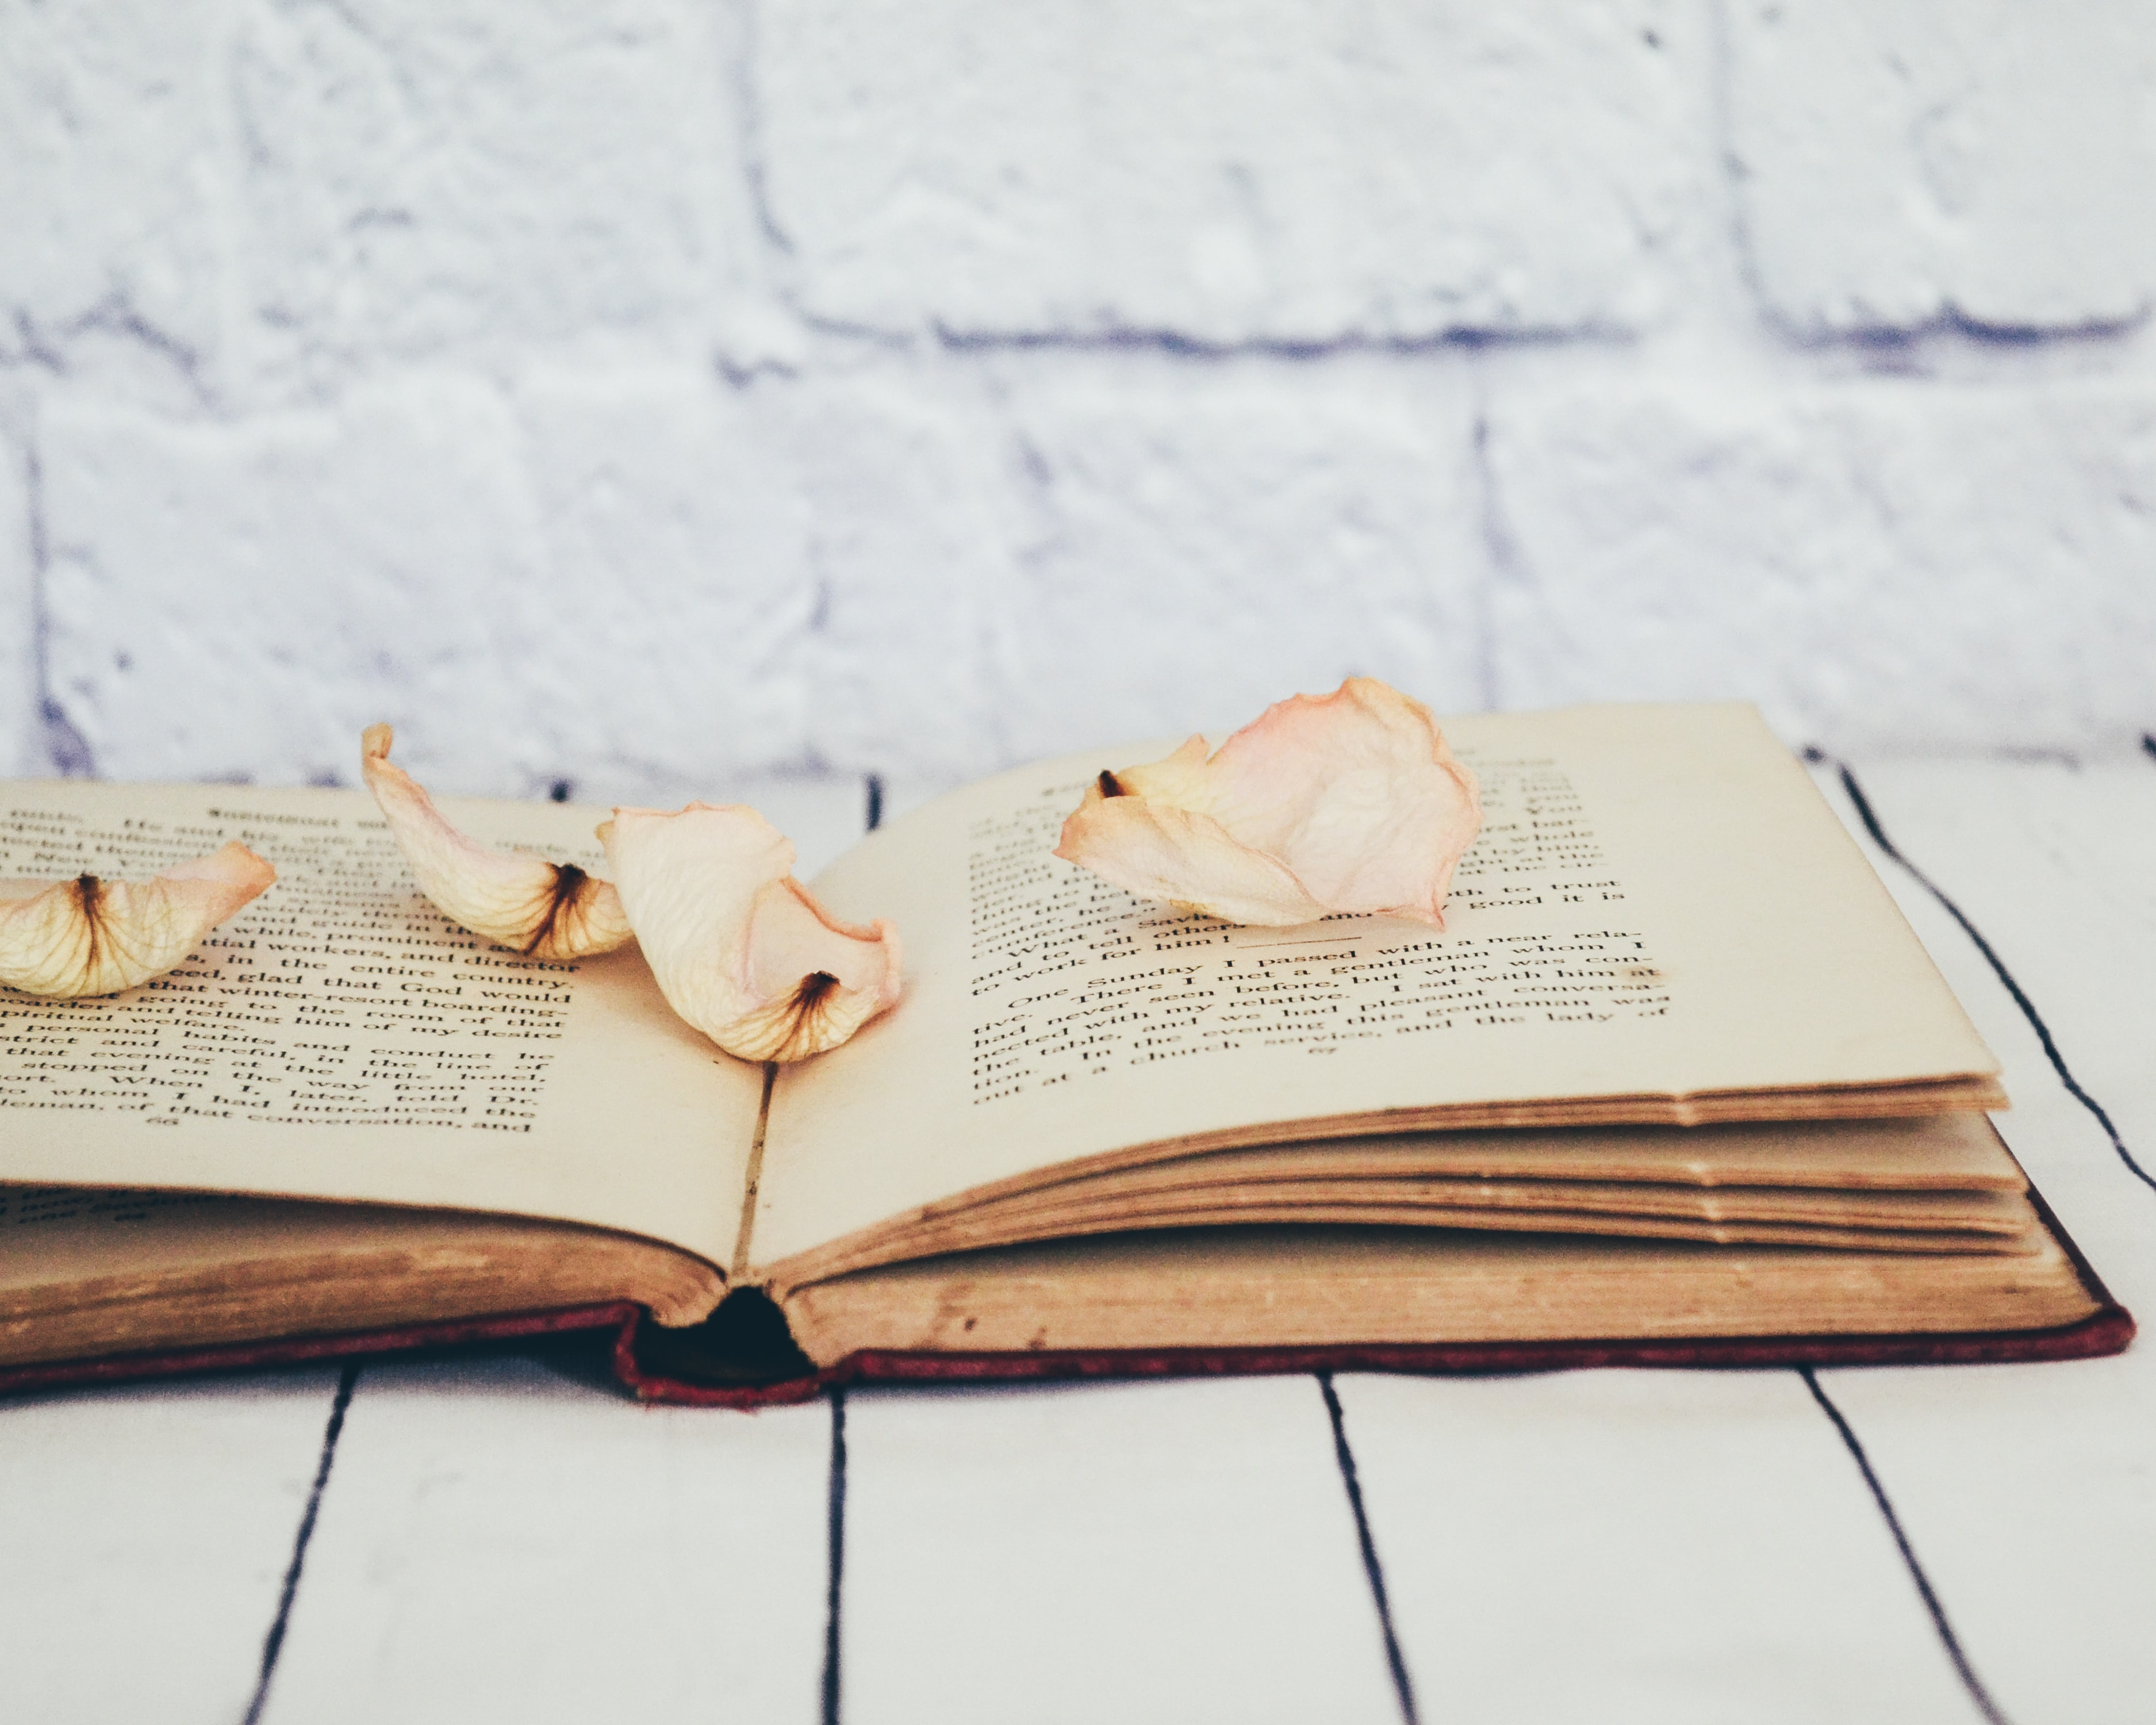 flower petals on opened book